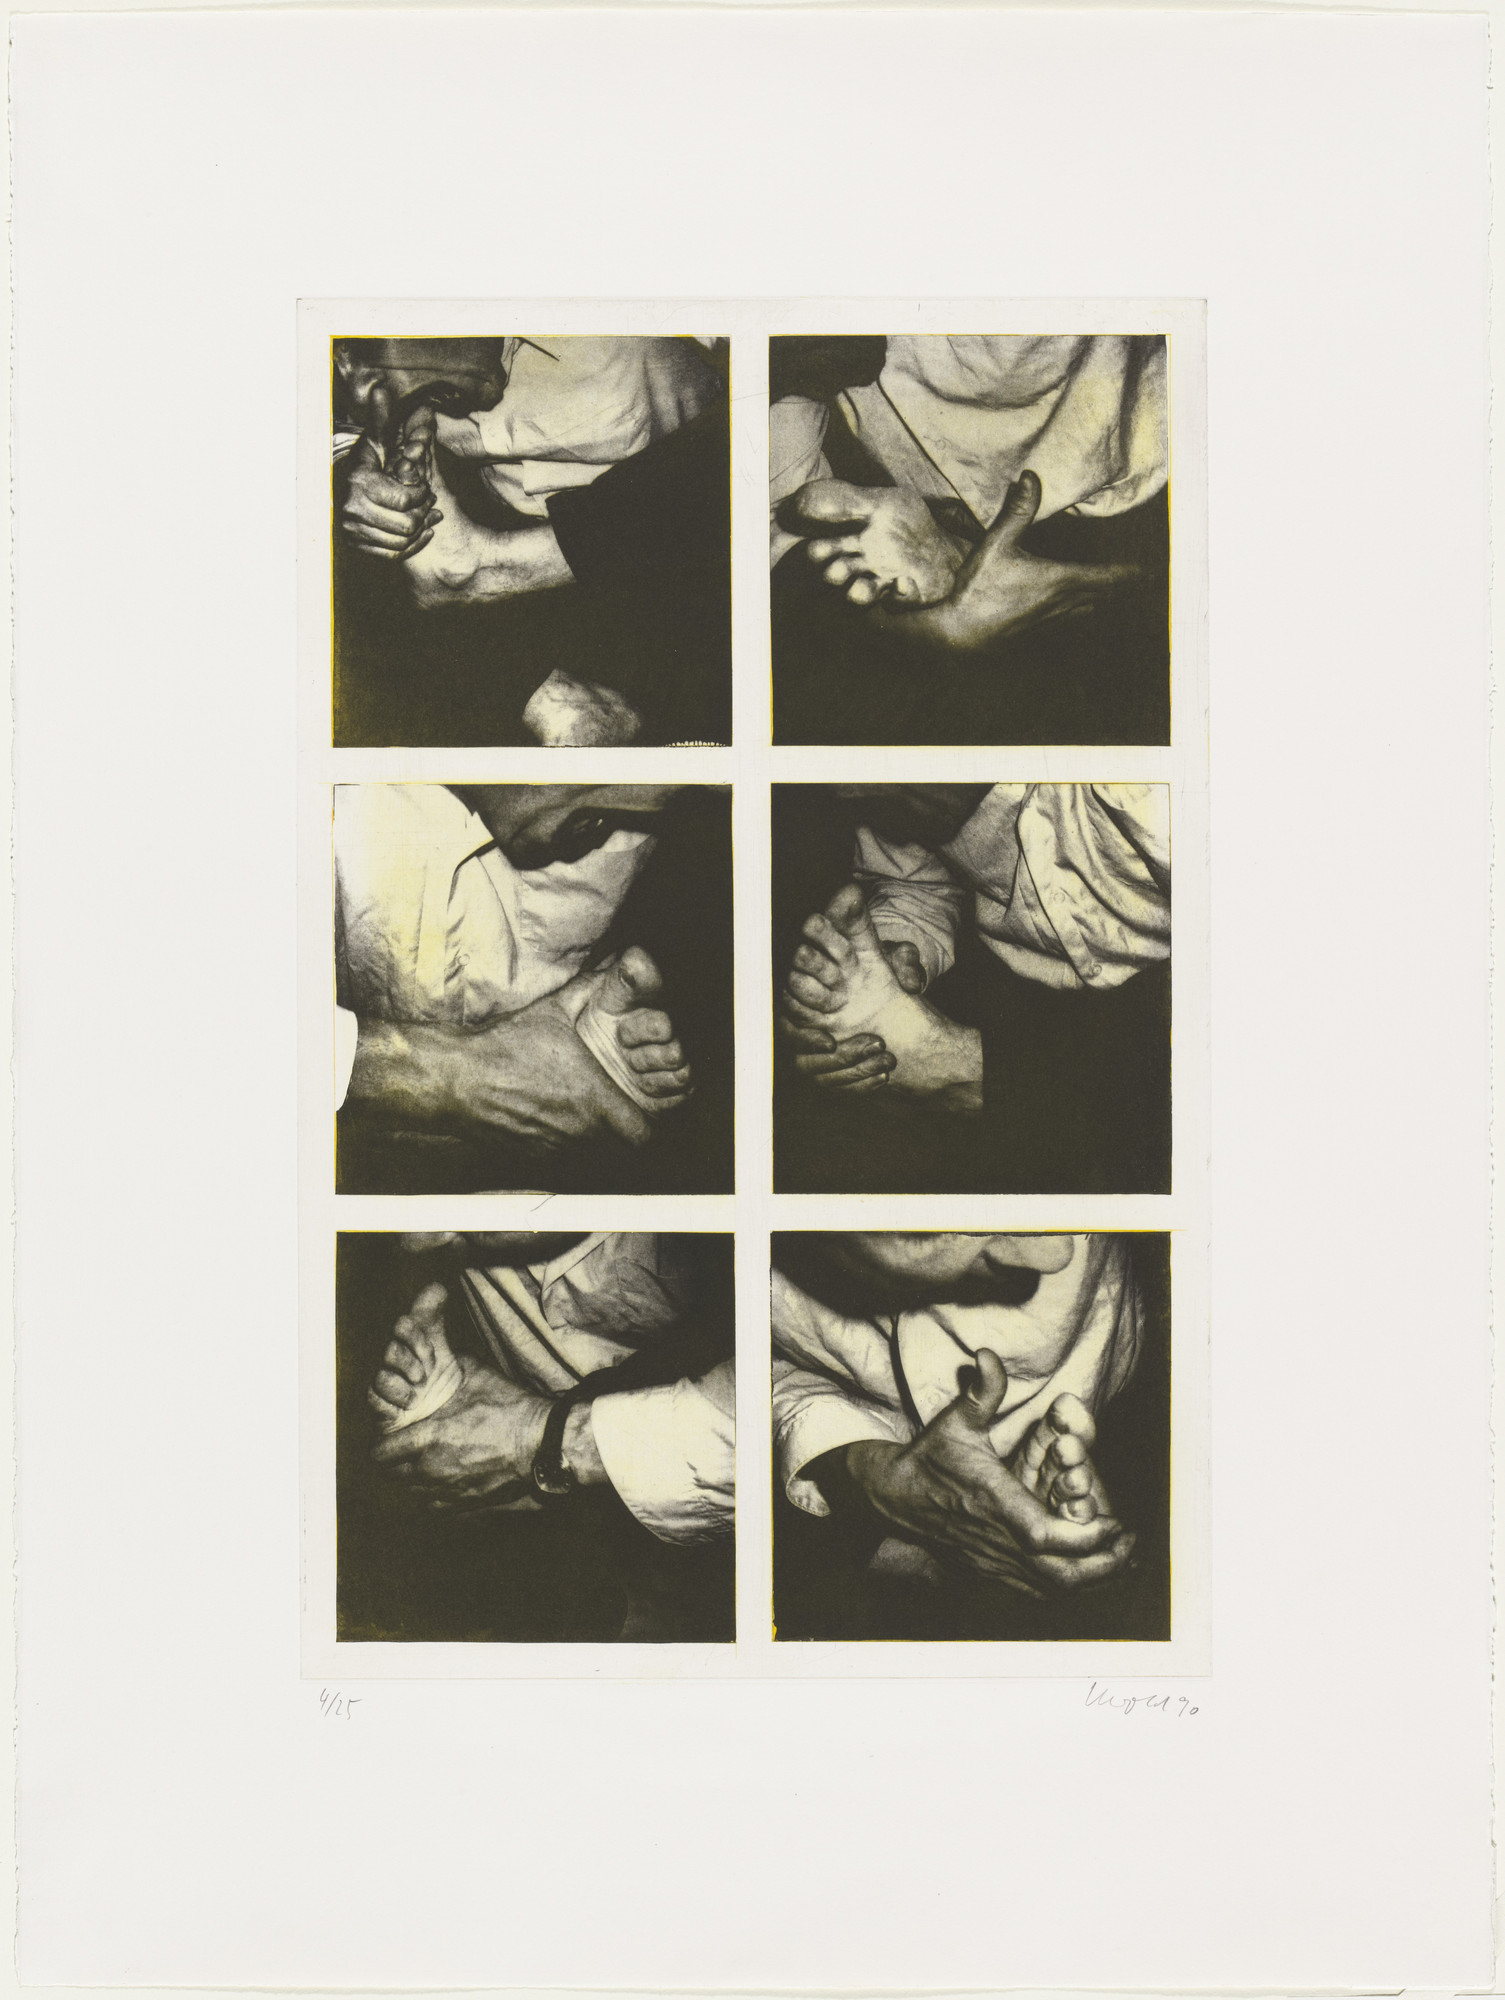 Georg Herold. Hand and Foot. 1990